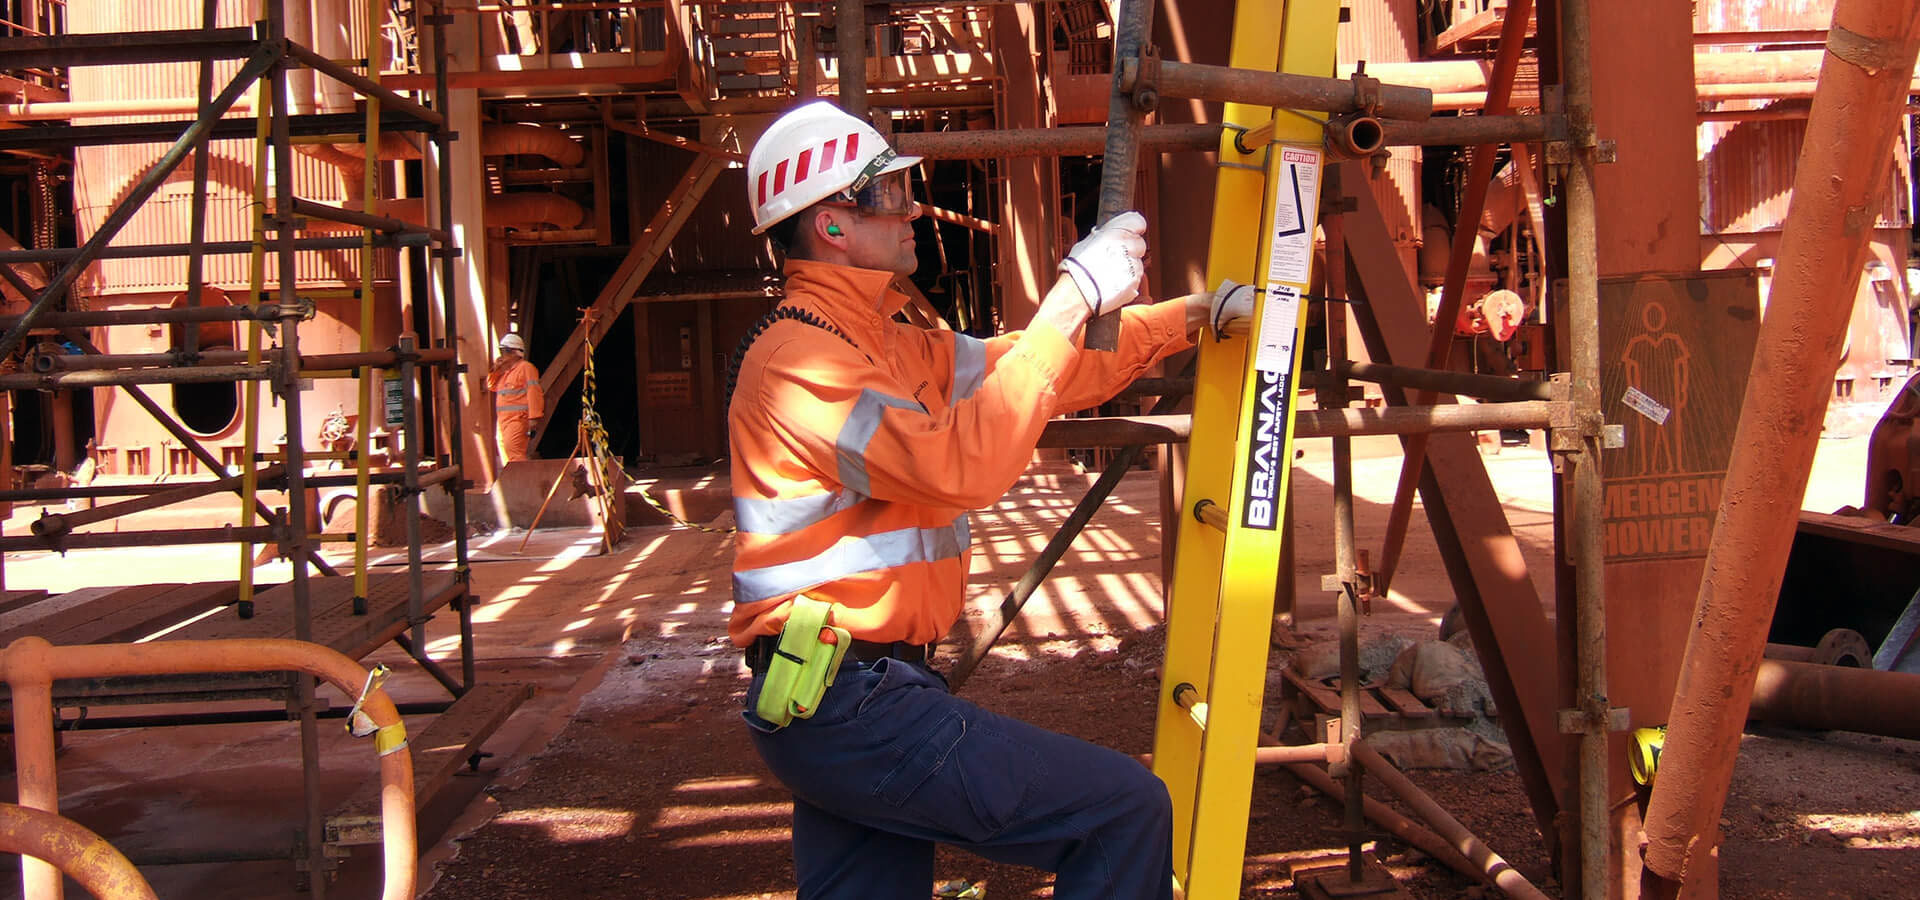 The Branach fibreglass CorrosionMaster Extension Ladder in a mining environment.